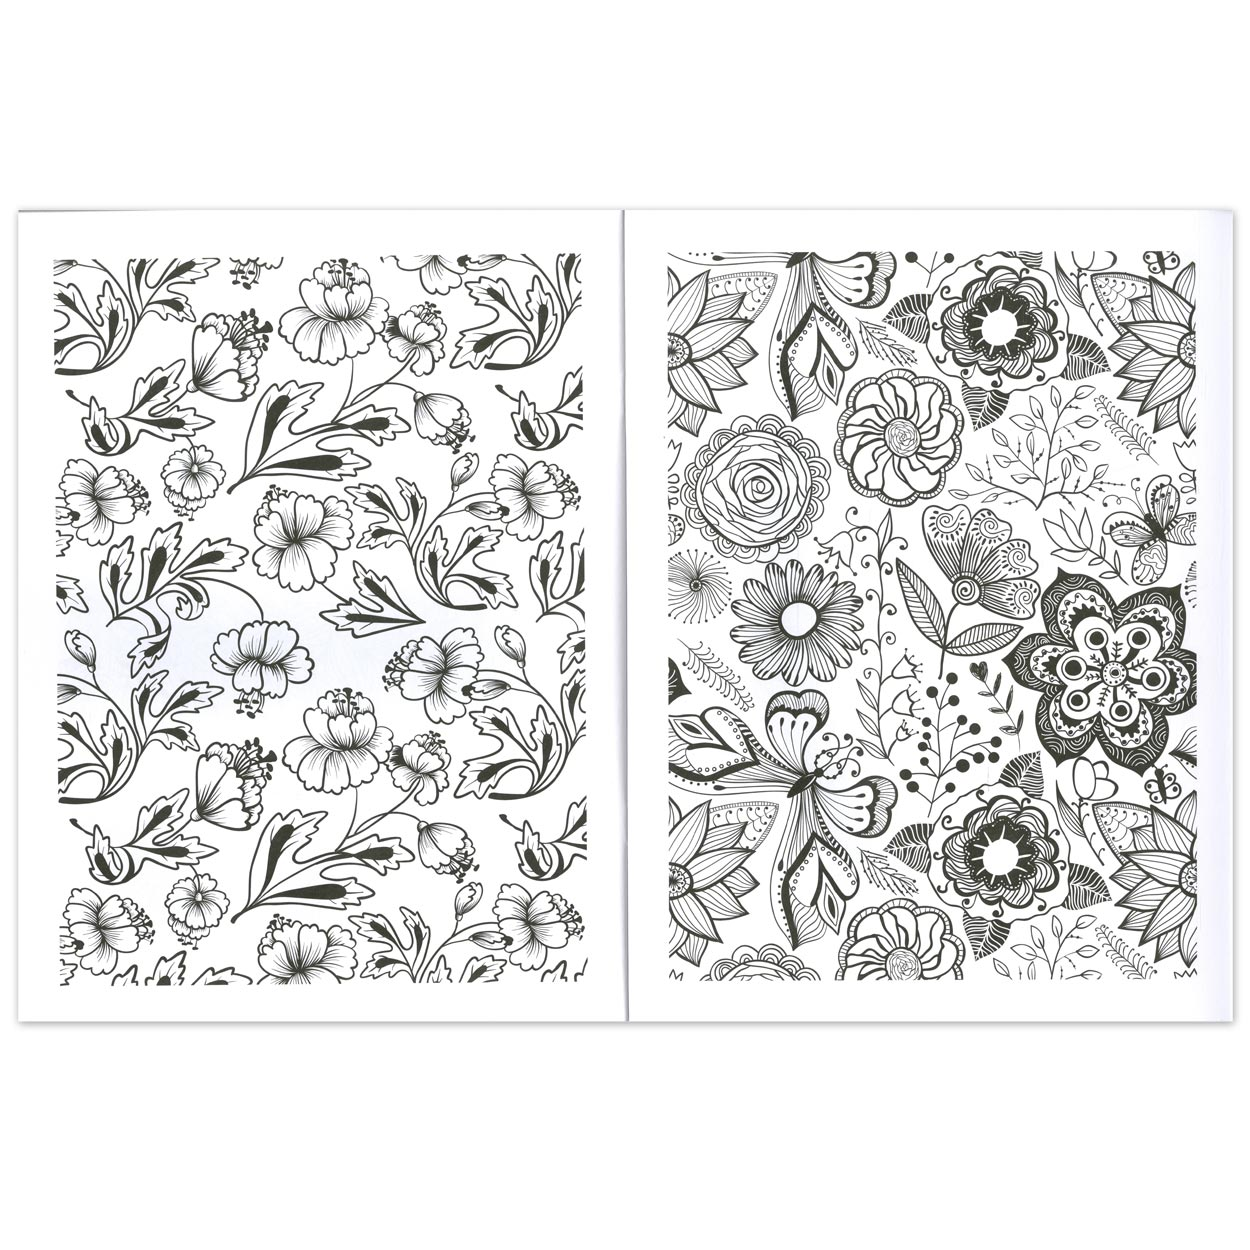 1000+ images about Kleurboek Volwassenen on Pinterest Coloring for adults, Adult coloring and ...